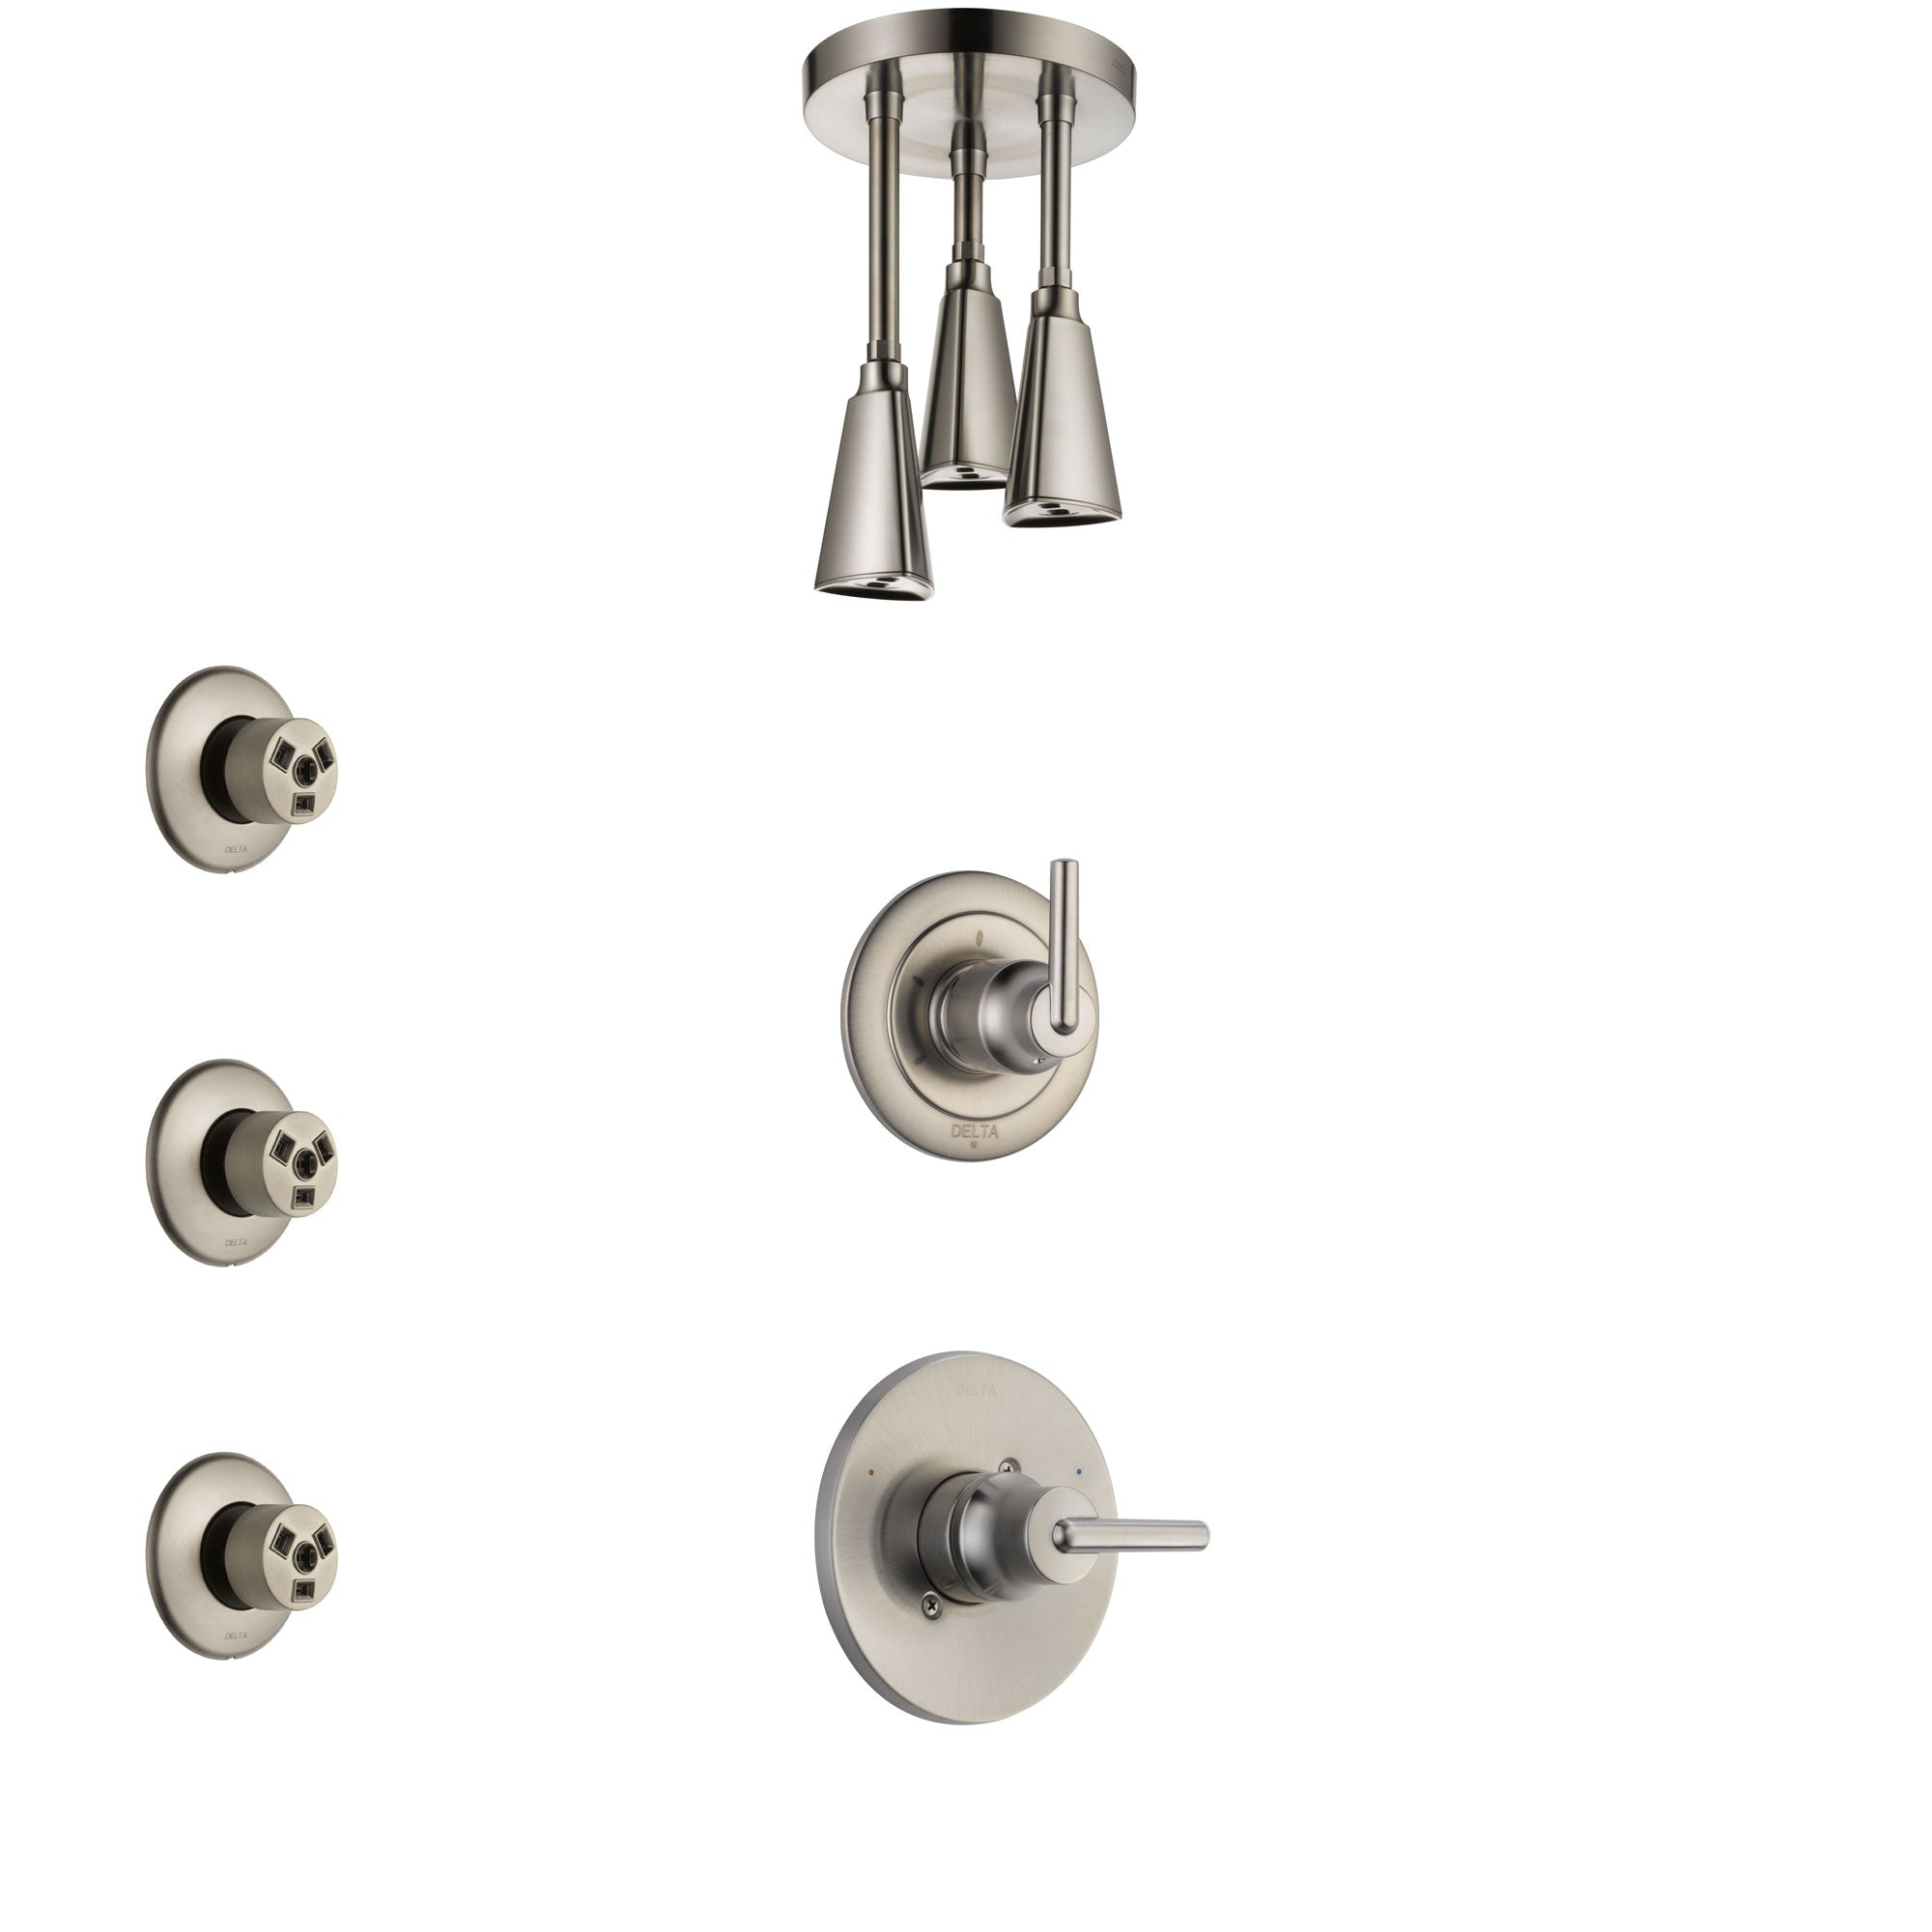 Delta Trinsic Stainless Steel Finish Shower System with Control Handle, 3-Setting Diverter, Ceiling Mount Showerhead, and 3 Body Sprays SS1459SS7